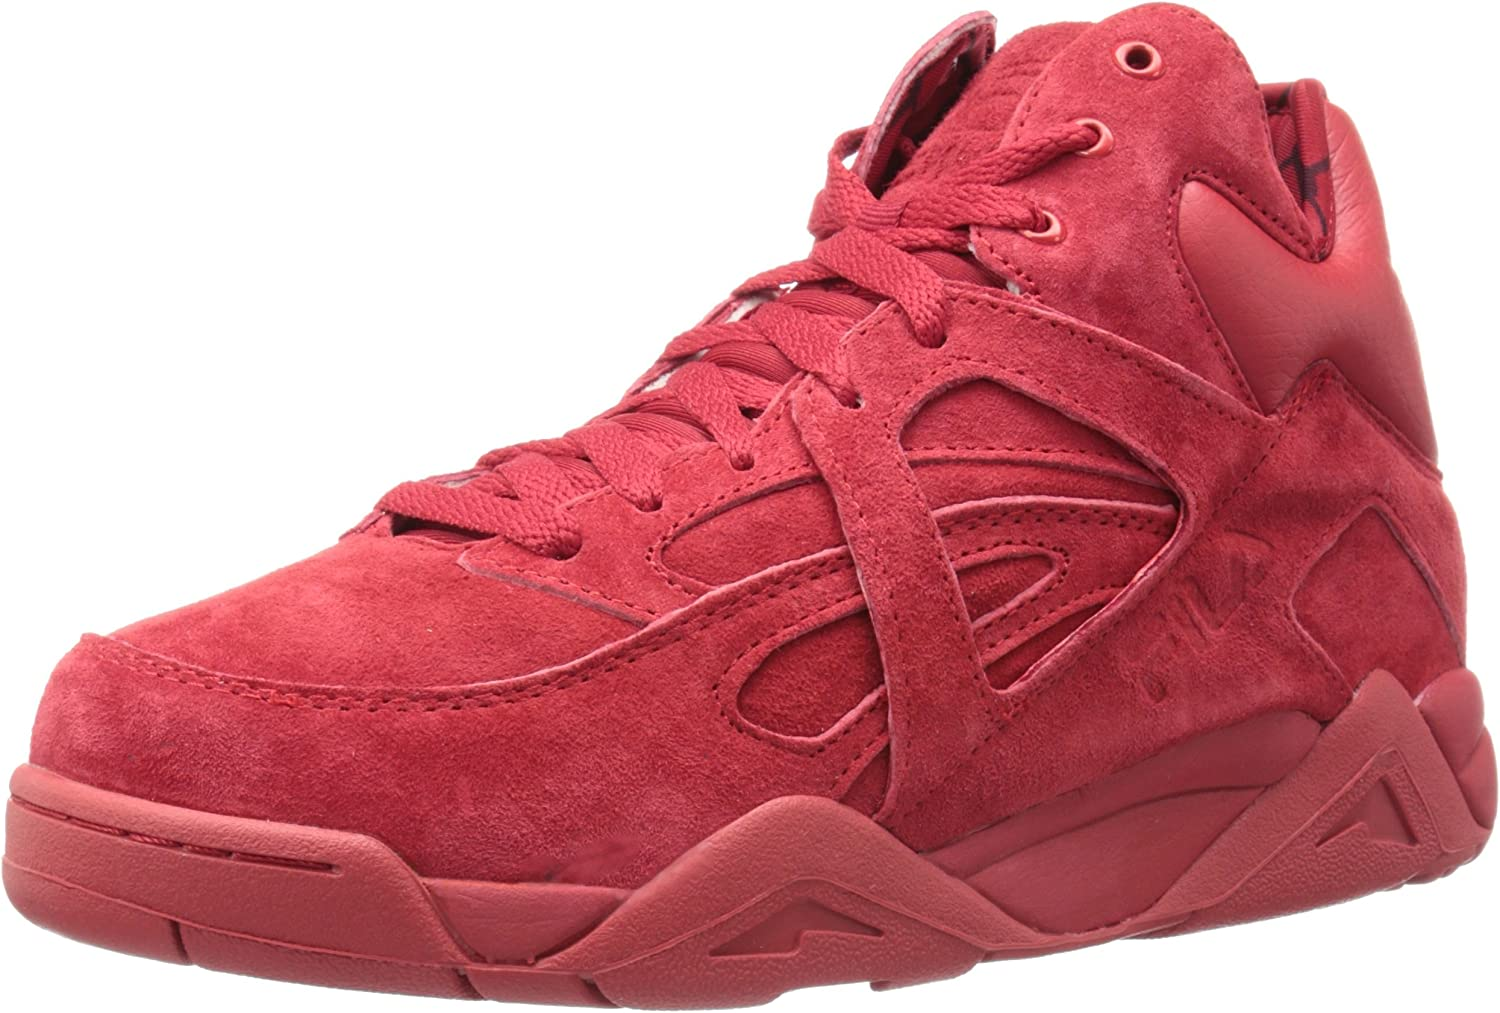 Fila Men's The Super sale Popular brand in the world period limited Shoe Basketball Cage